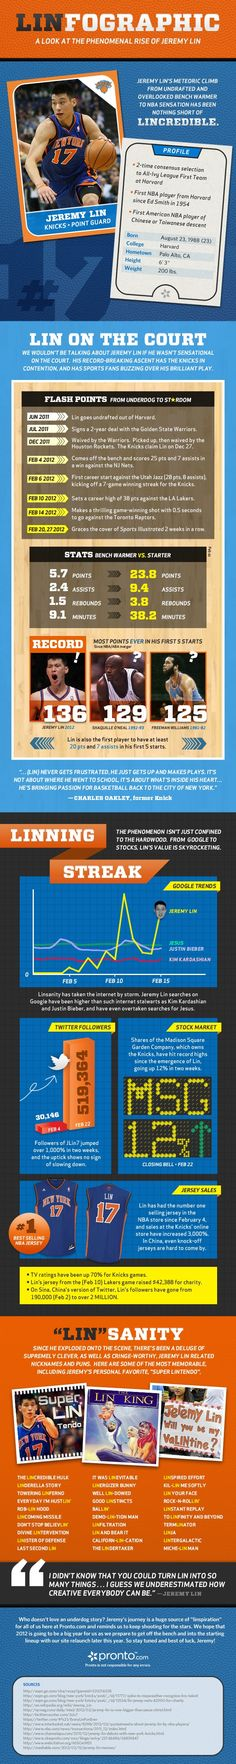 Linfographic: Just how influential has Jeremy Lin been?